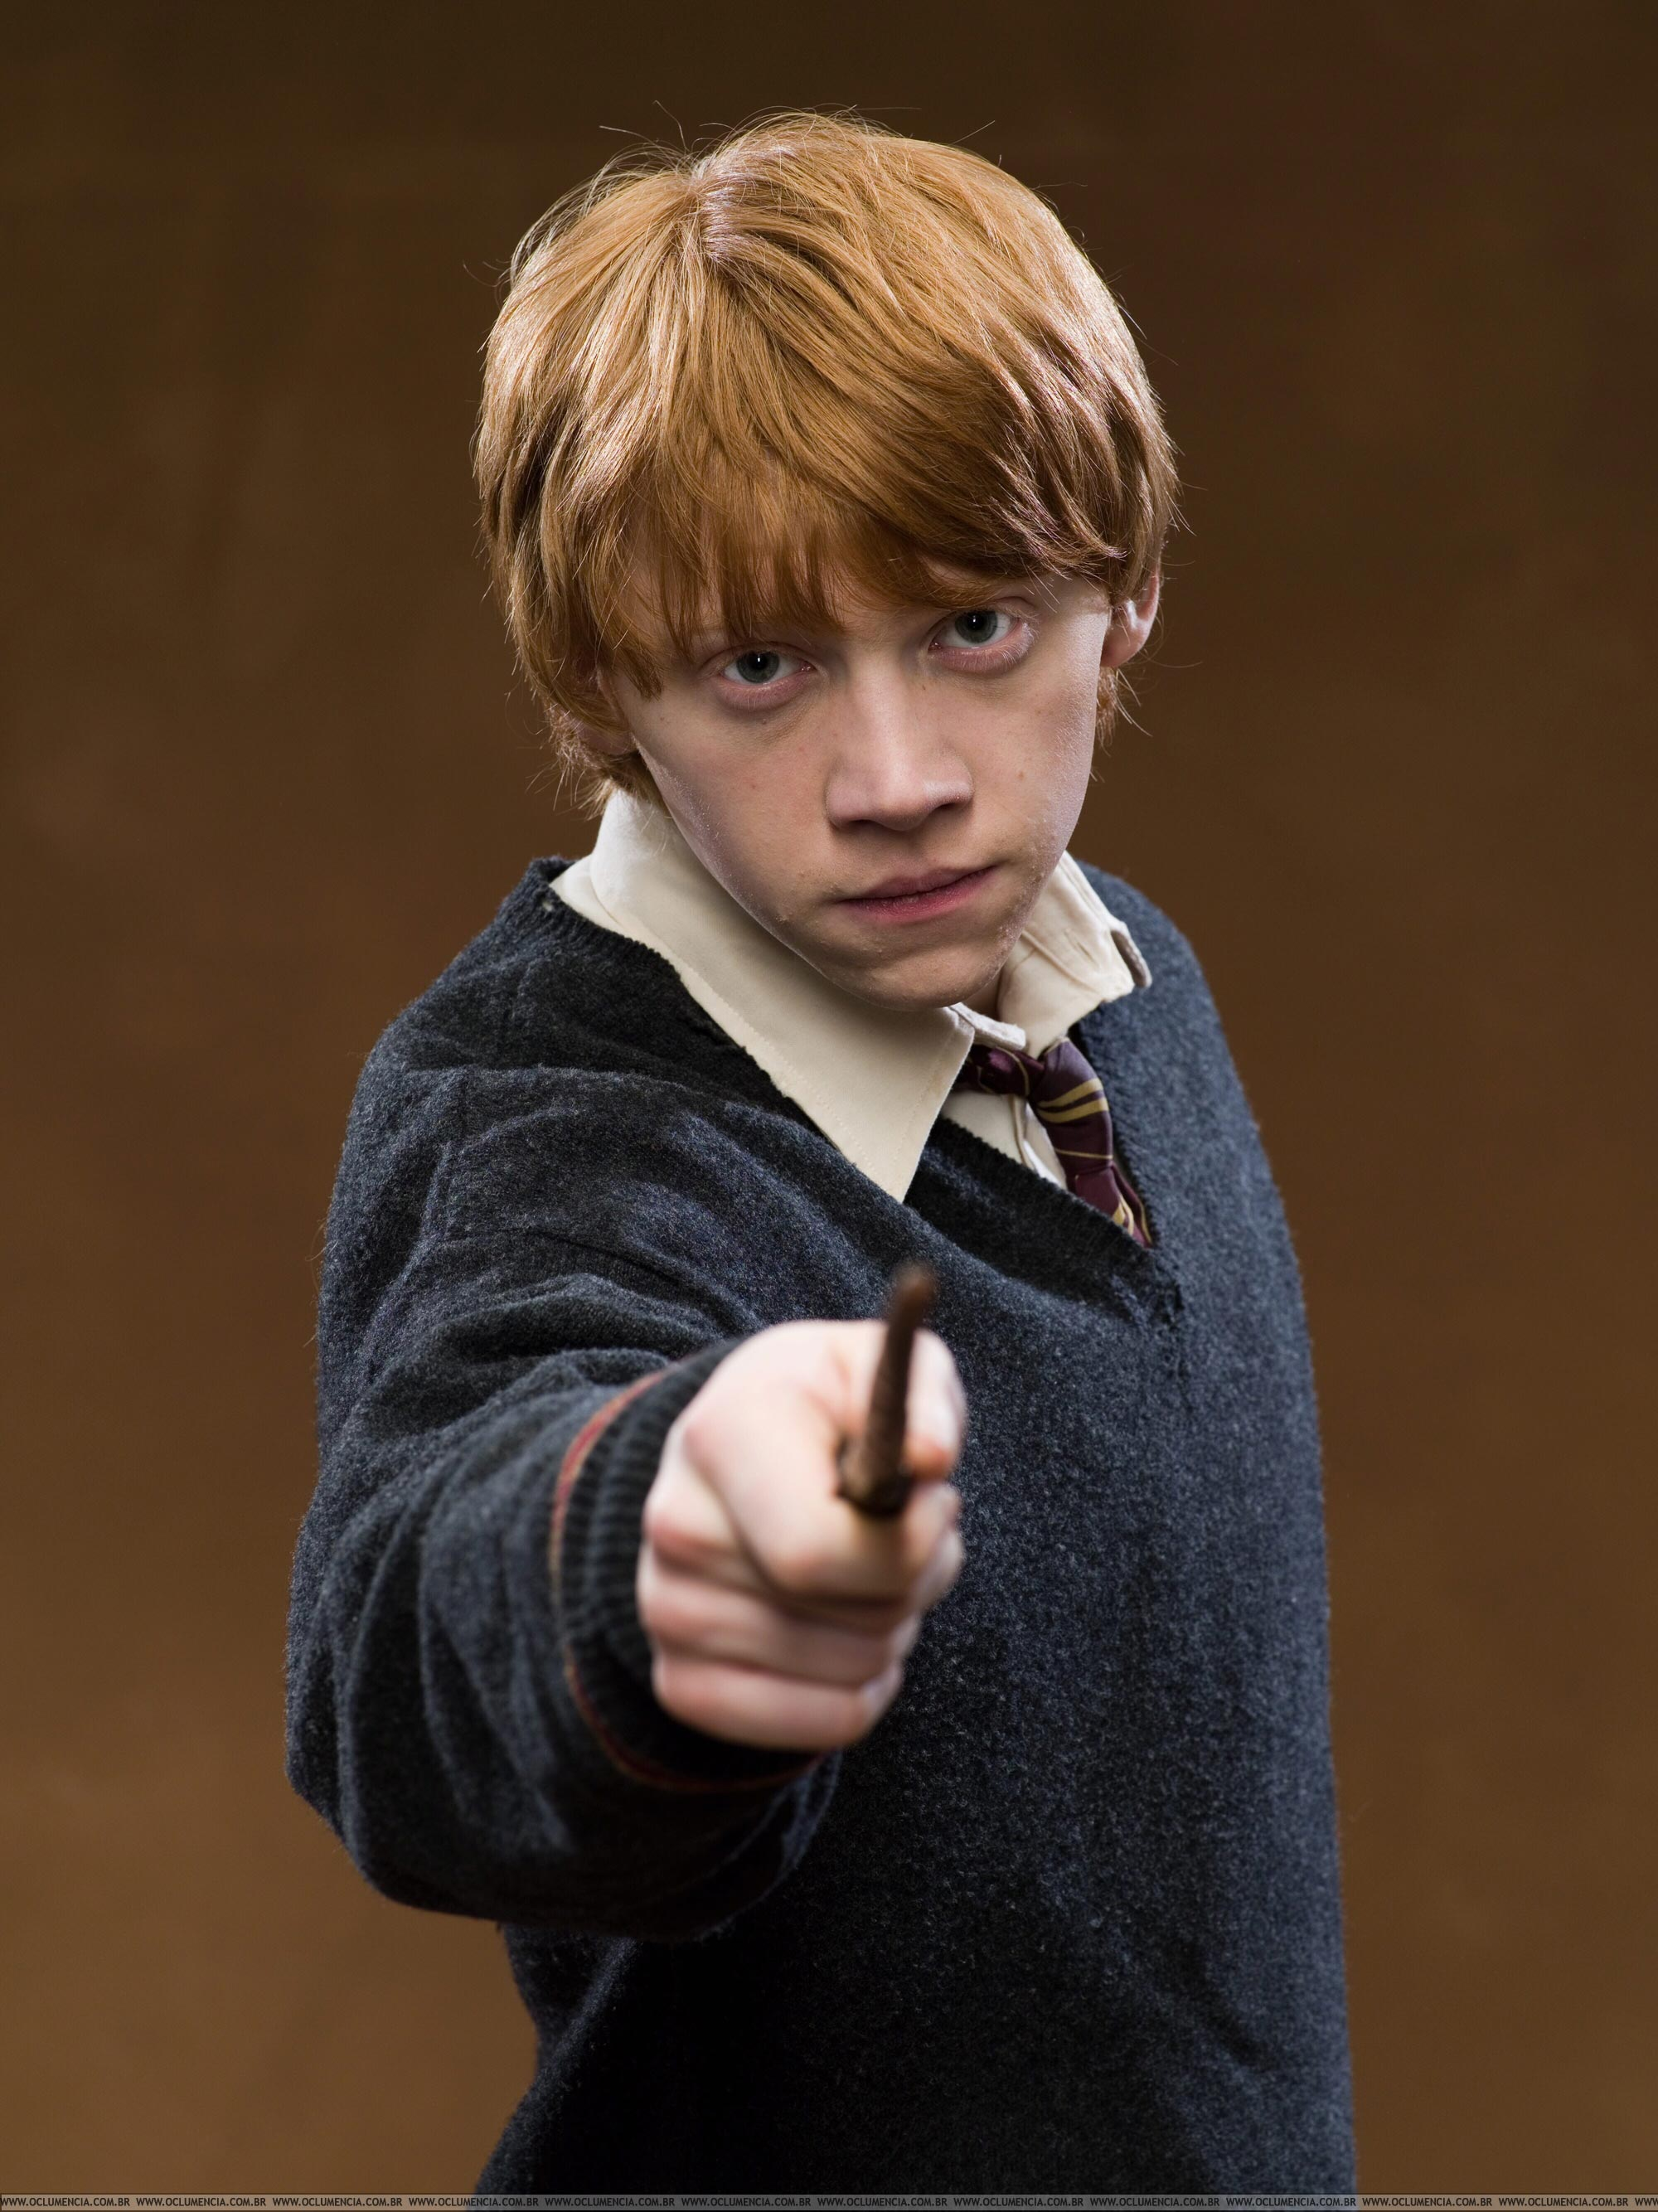 Rupert Grint Biography » About his projects